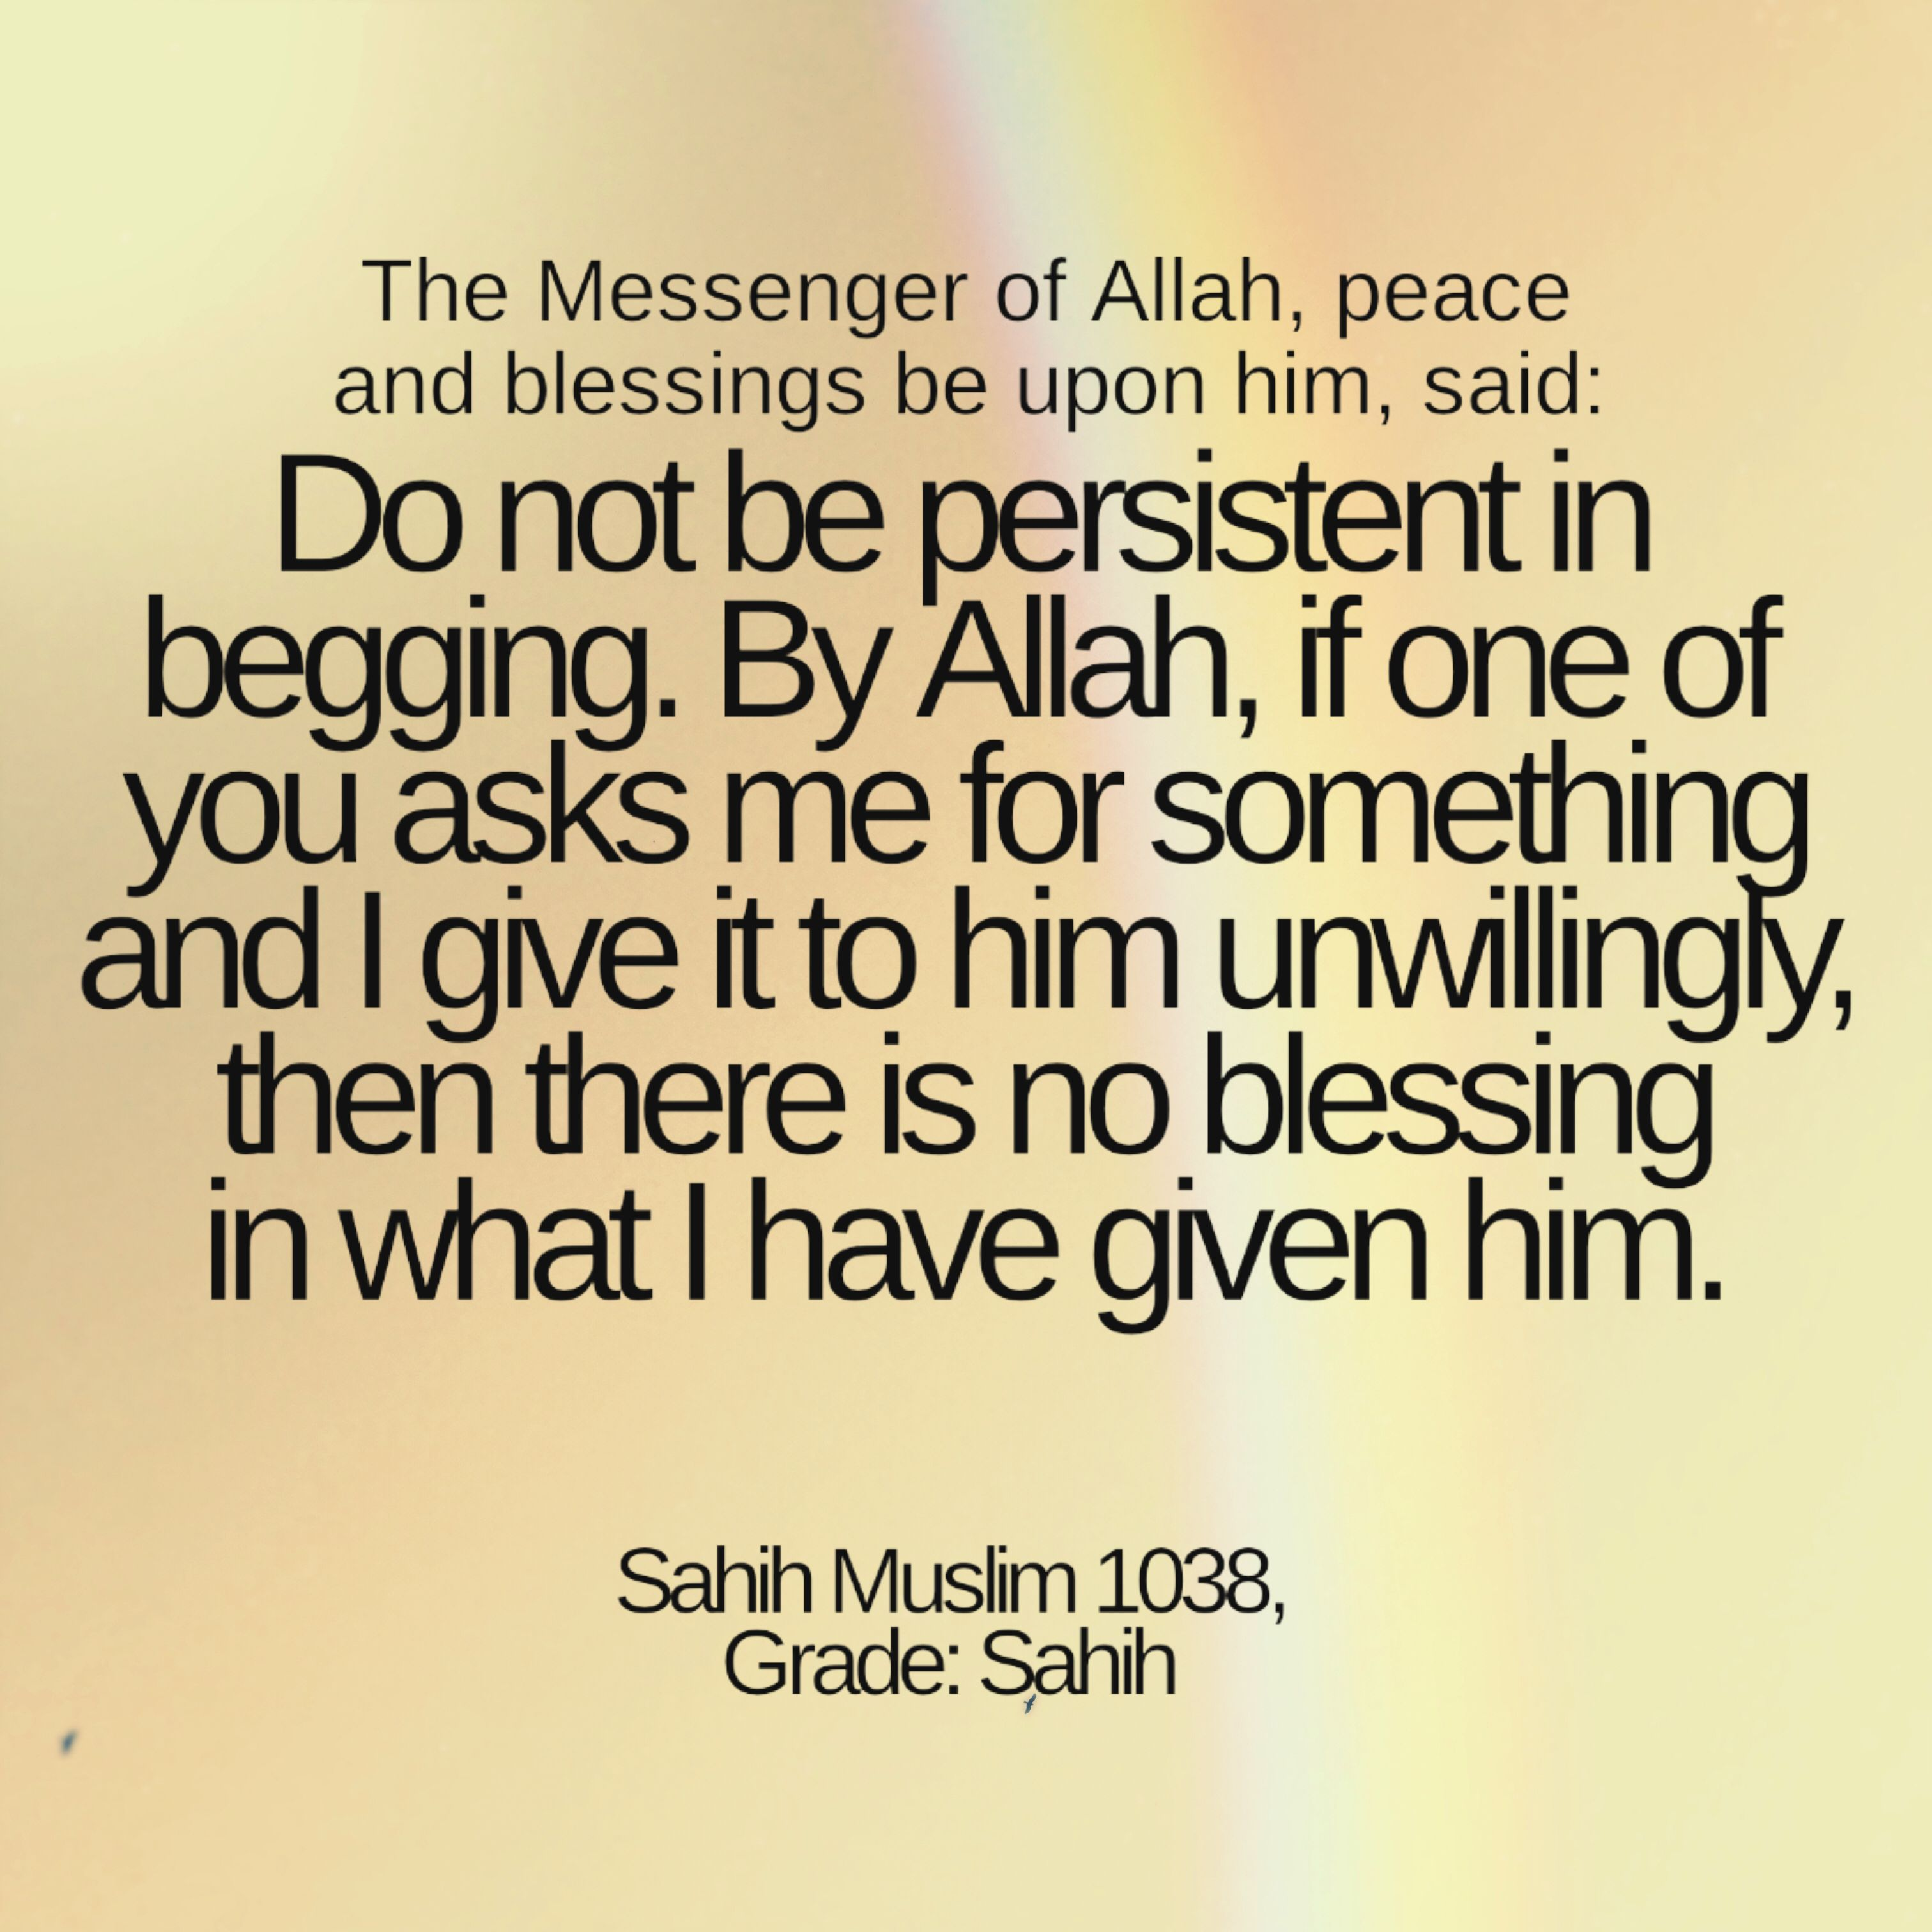 Essay on begging in islam thesis about death and dying